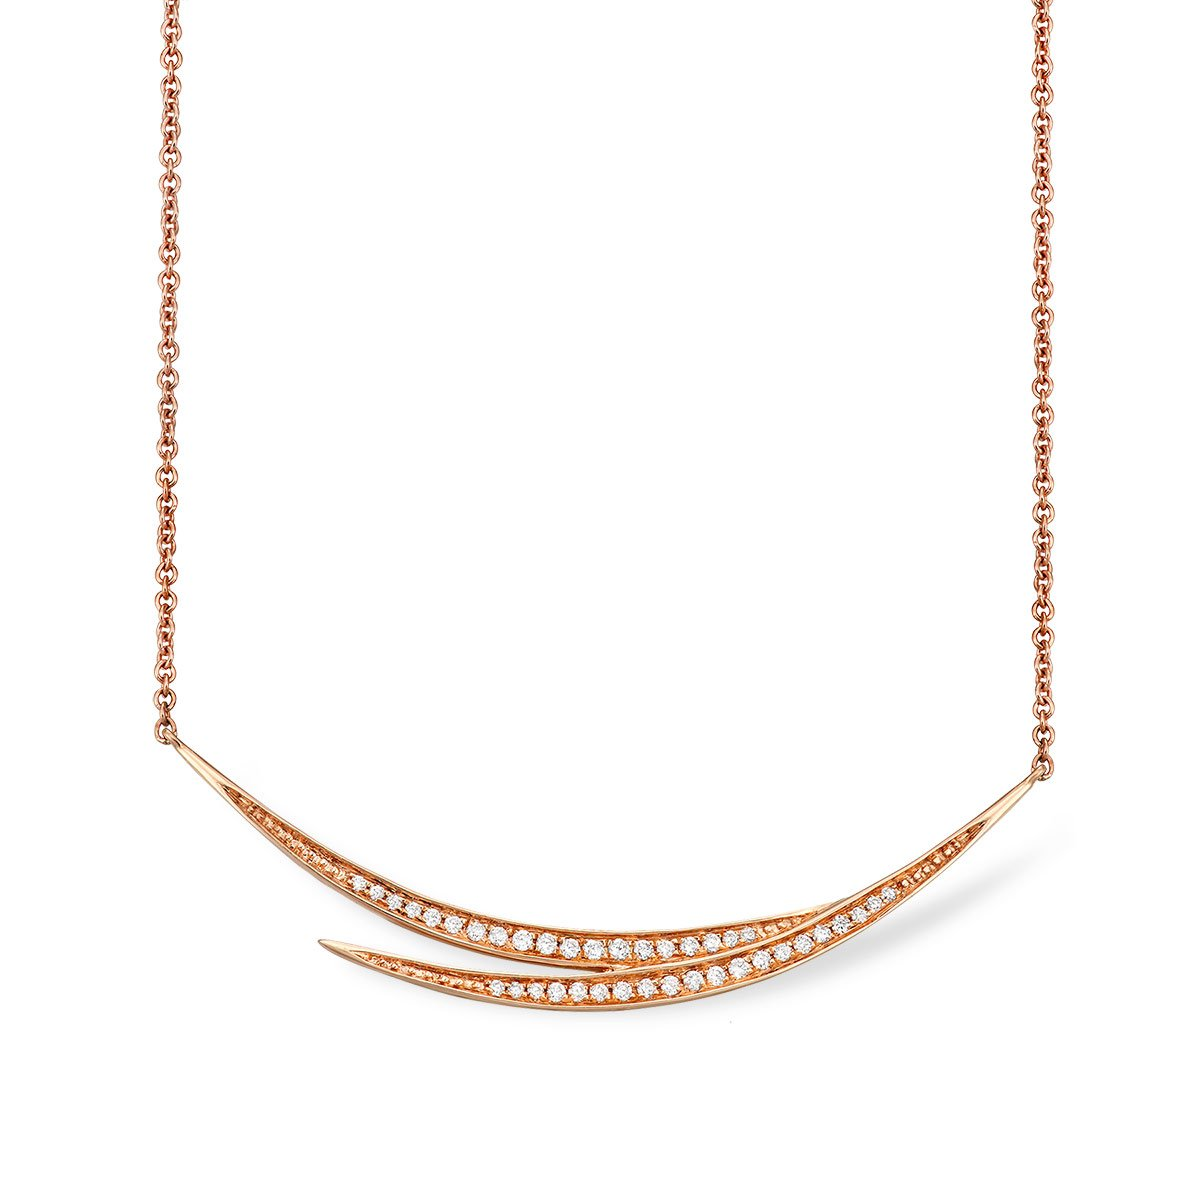 Milky Way Necklace - Serena Williams Jewelry